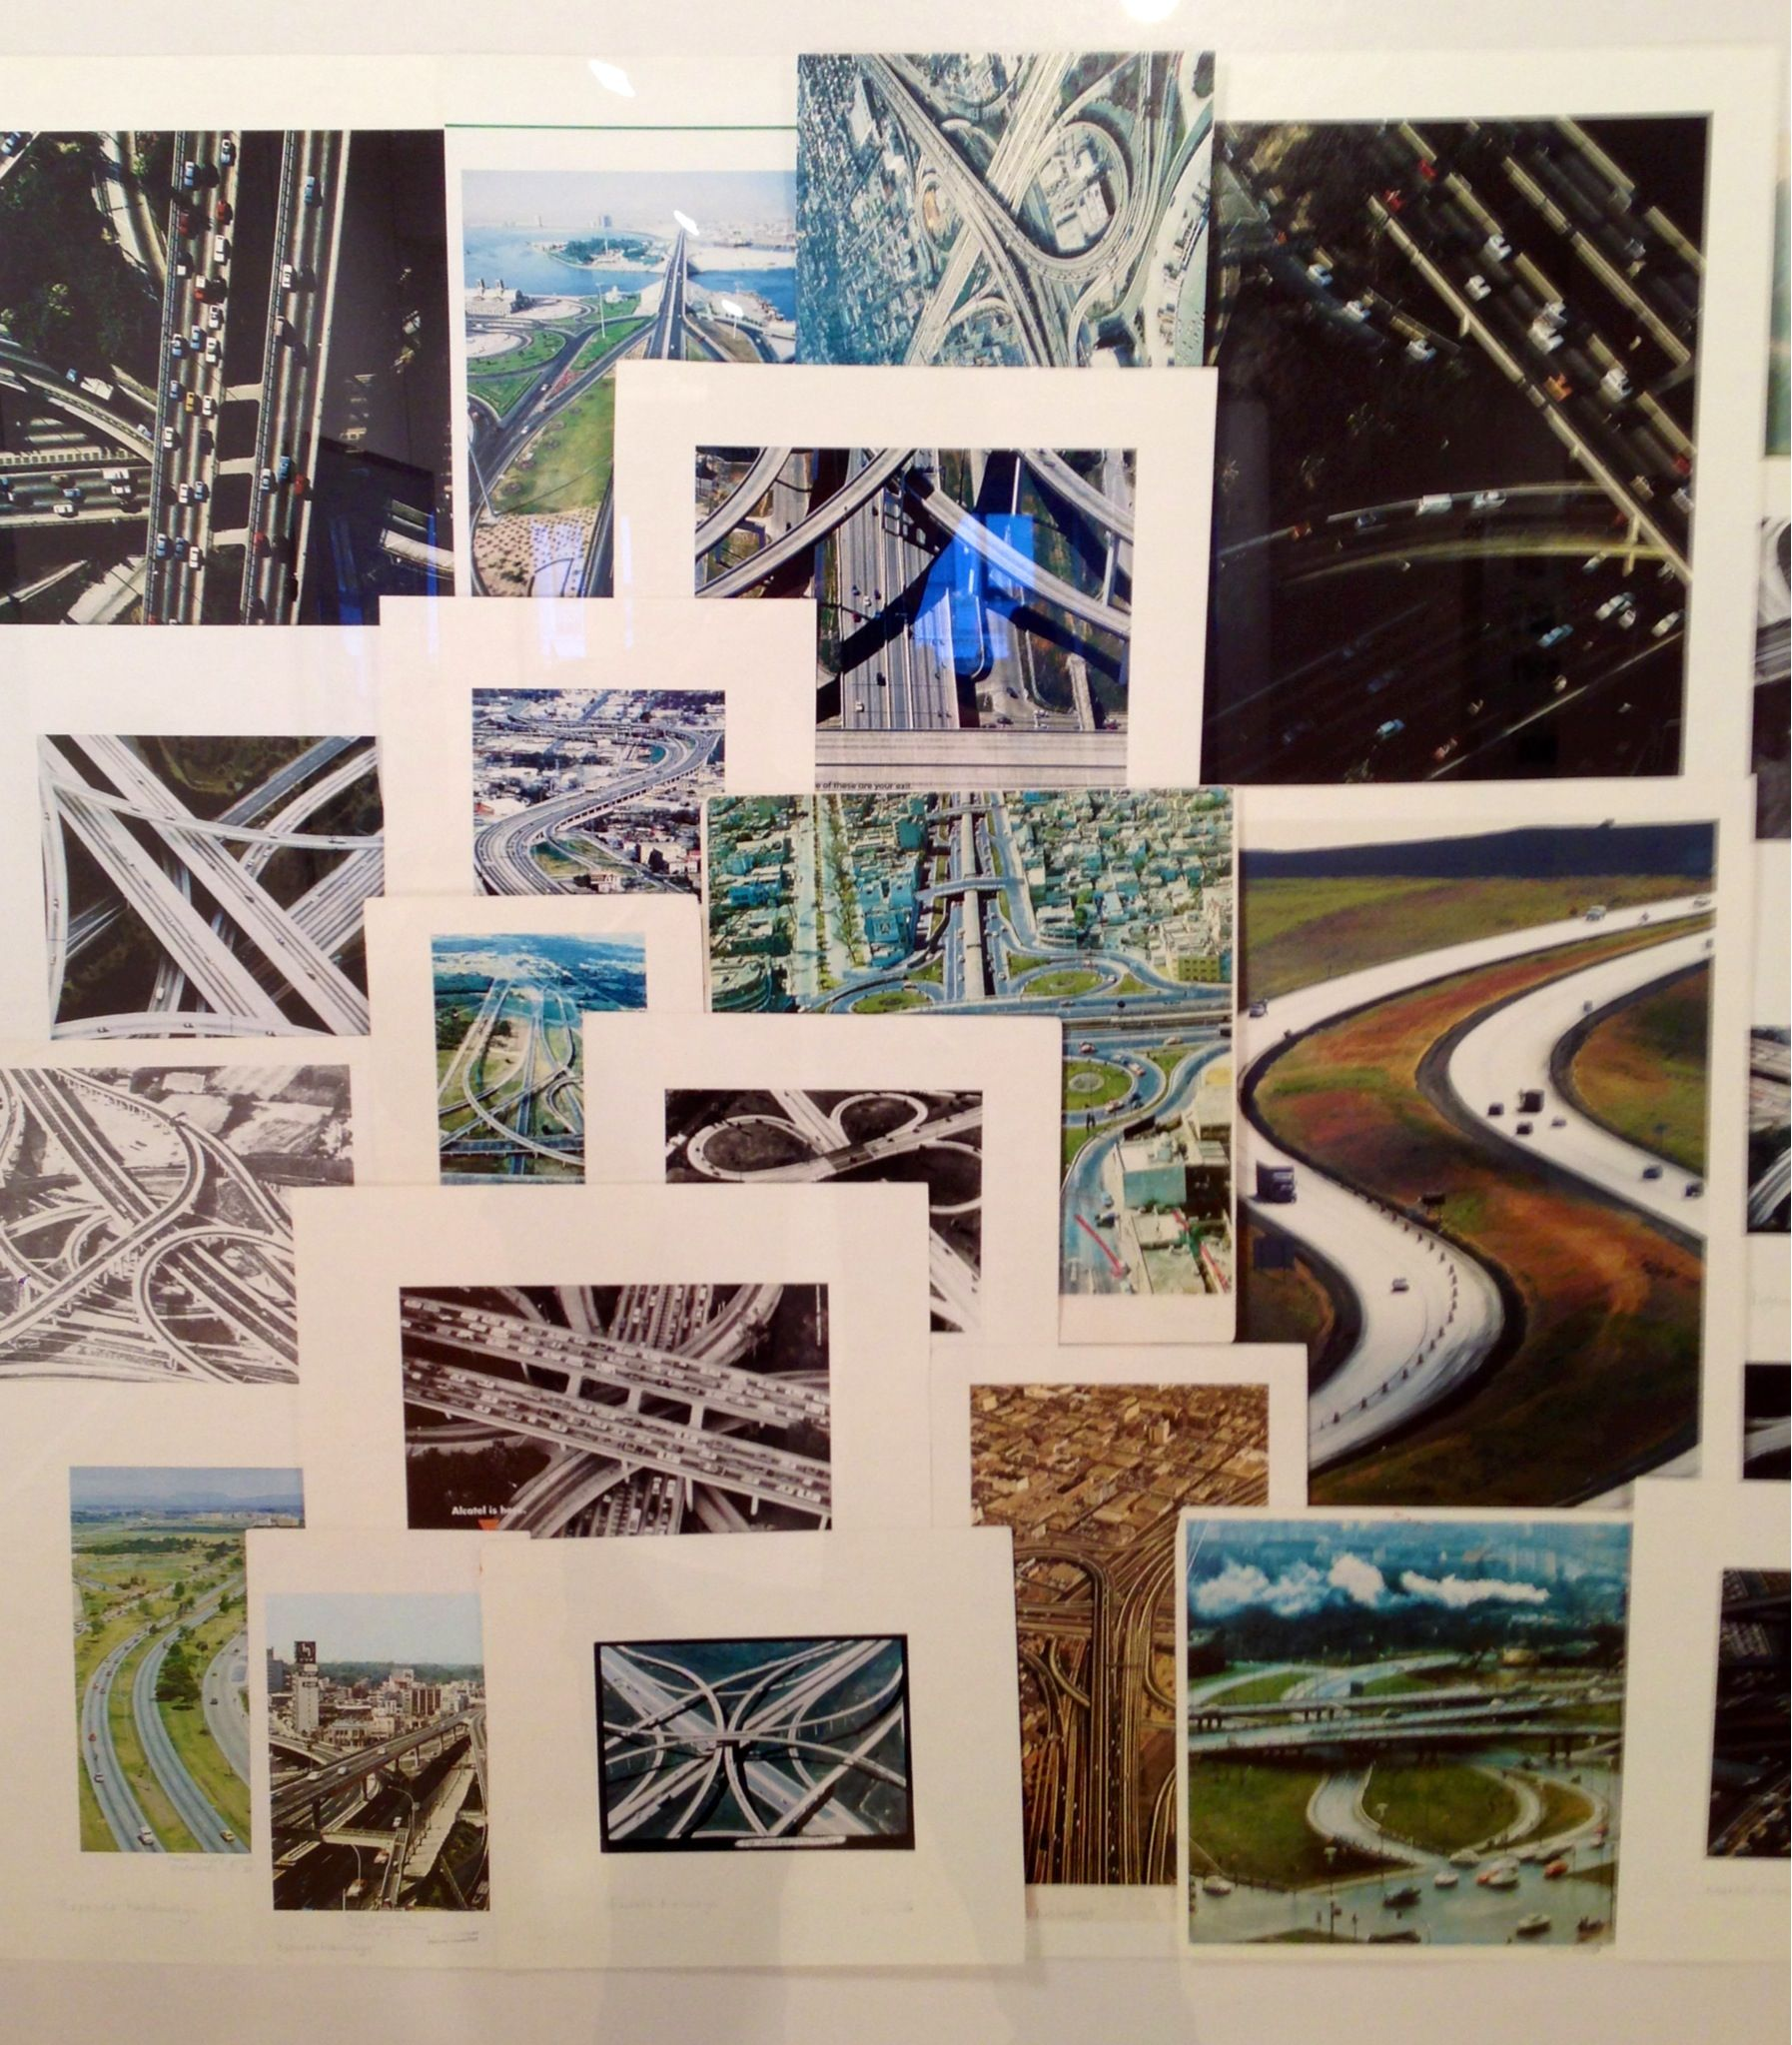 """Taryn Simon's """"Roadways"""" collage from historic photos archived at the New York Public Library. On display at the  John Berggruen Gallery in SF."""